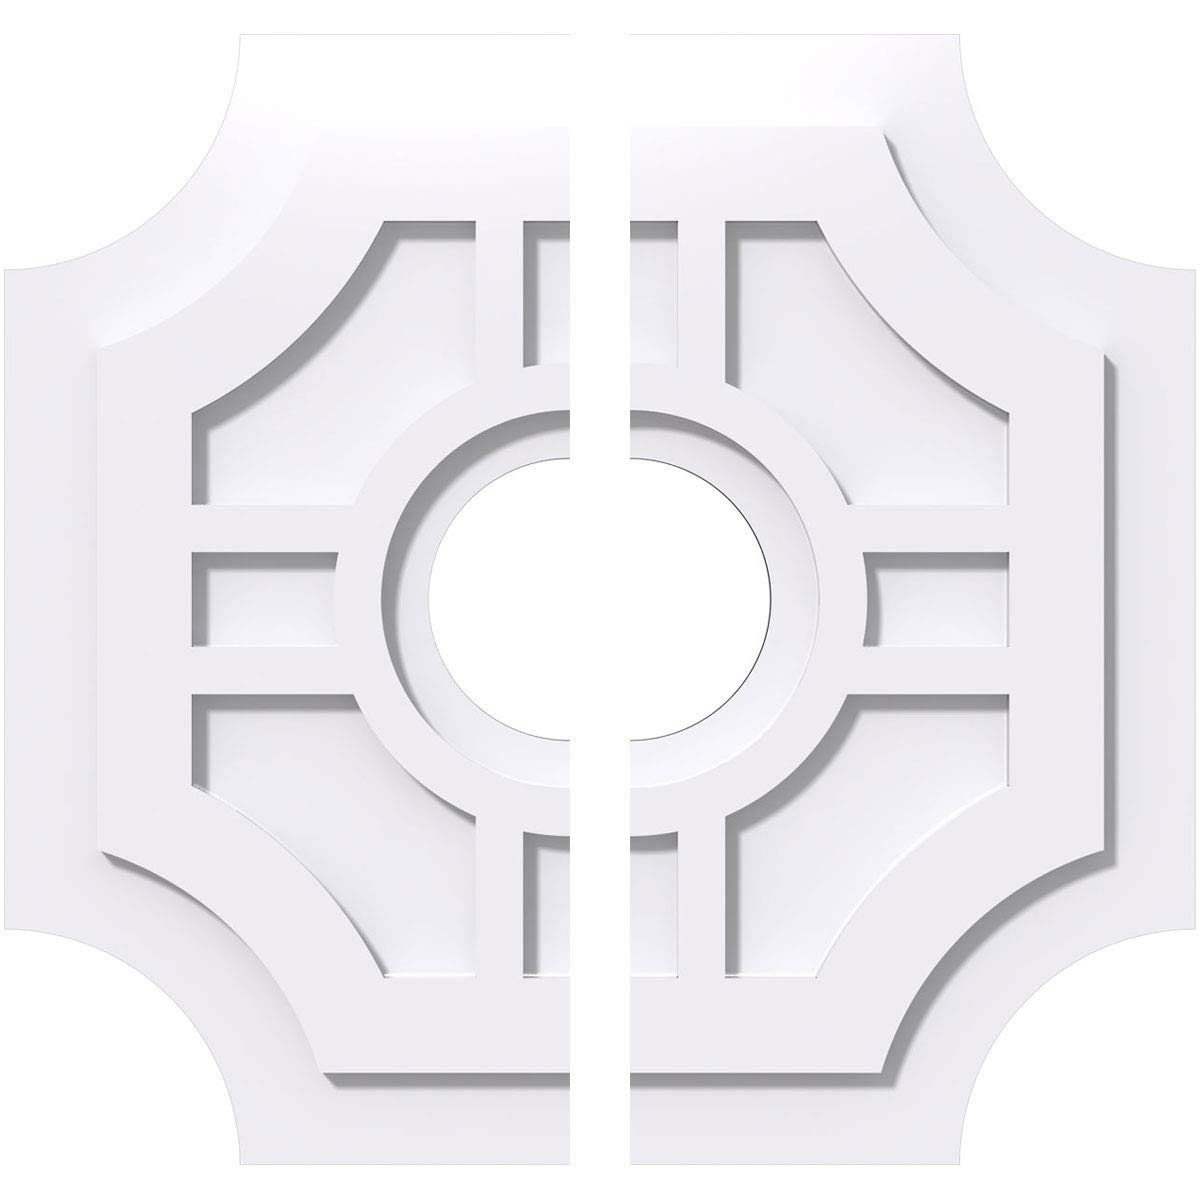 Ekena Millwork CMP20HS2-05000 20 in. OD x 5 in. ID Square Haus Architectural Grade PVC Contemporary Ceiling Medallion - 2 Piece